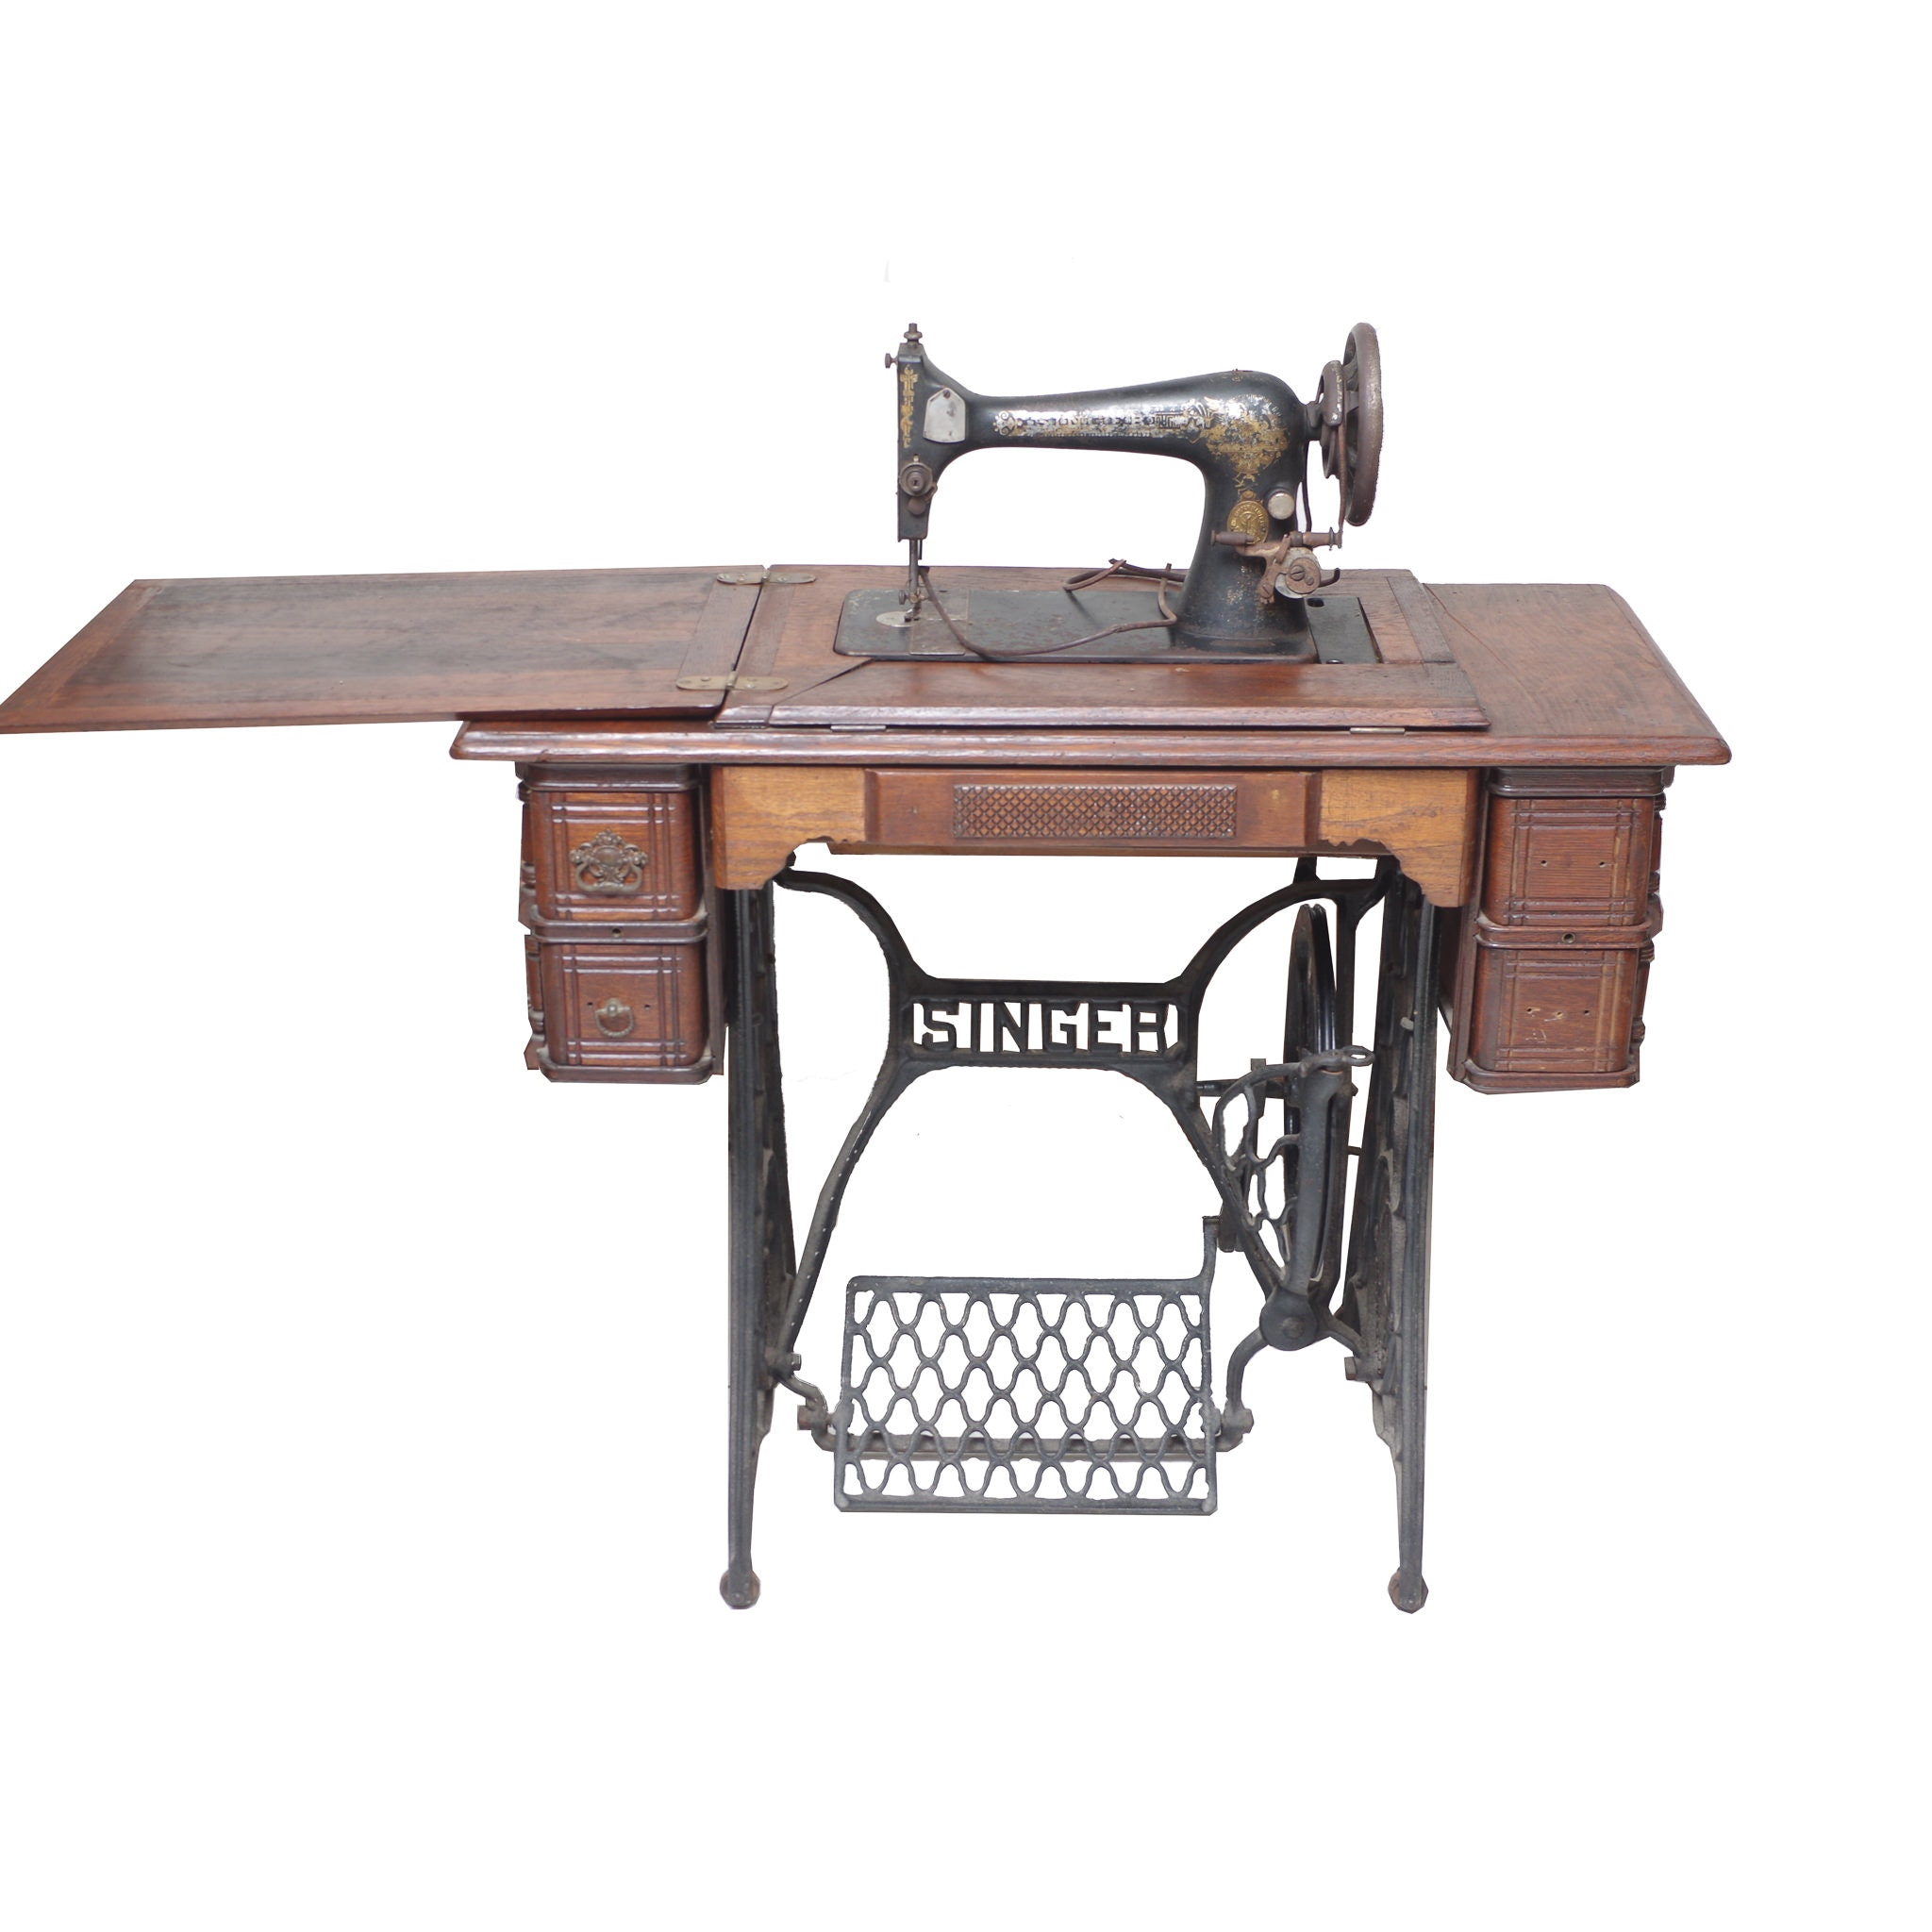 Greatest Singer Sewing Machine Table in Cast Iron Base : EBTH MP35